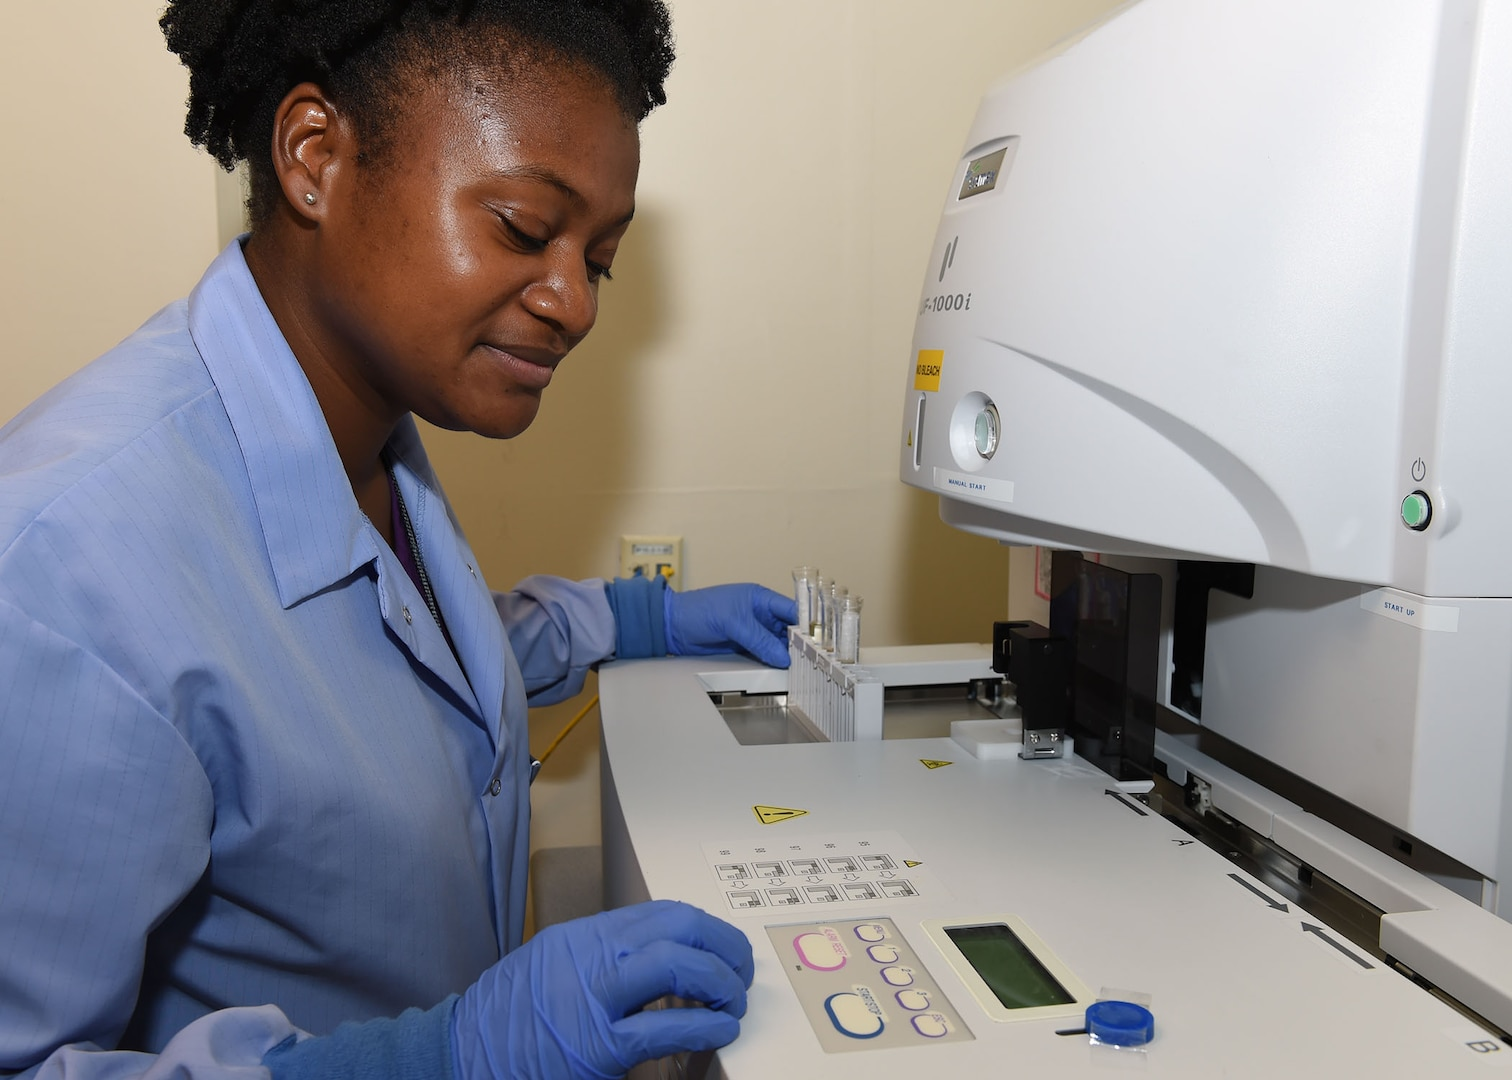 Hope Blanding, a 59th Diagnostics and Therapeutics Squadron medical lab technician, uses a Sysmex UF-1000i to run a microscopic analysis on samples in the Wilford Hall Ambulatory Surgical Center main lab, August 16. Devices like the Sysmex help to increase the accuracy and speed when processing sample for Science and Technology research projects. (U.S. Air Force photo/Tech. Sgt. Christopher Carwile/Released)